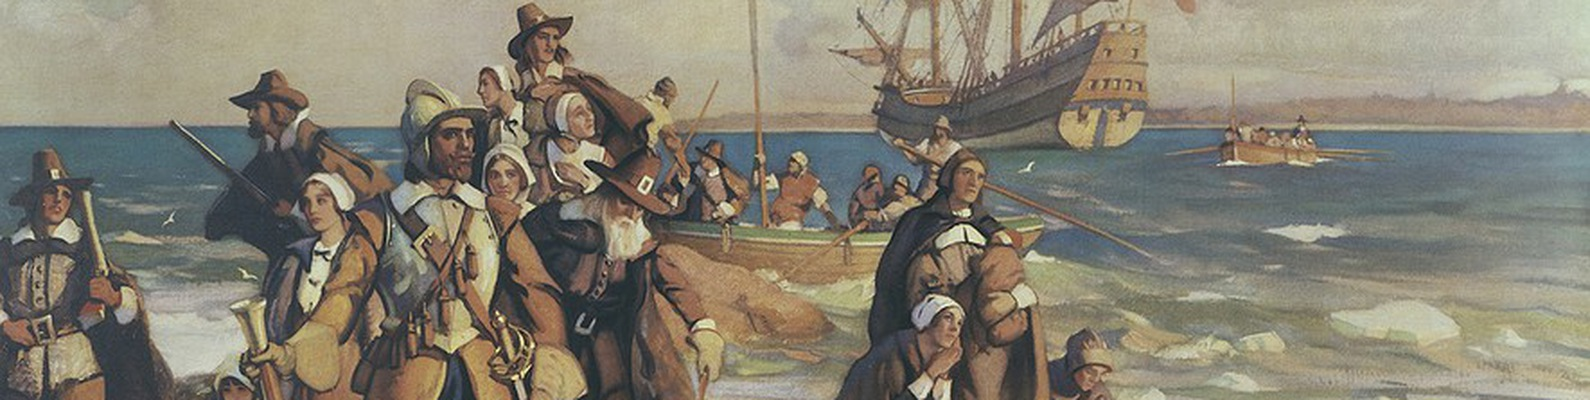 an introduction to the history of jamestown and plymouth in the united states of america Browse through an interactive timeline of america's peculiar institution slavery in what became the united states probably began with the arrival of 20 and odd enslaved africans to the british colony of jamestown use our timeline to navigate a history of slavery in the united states.